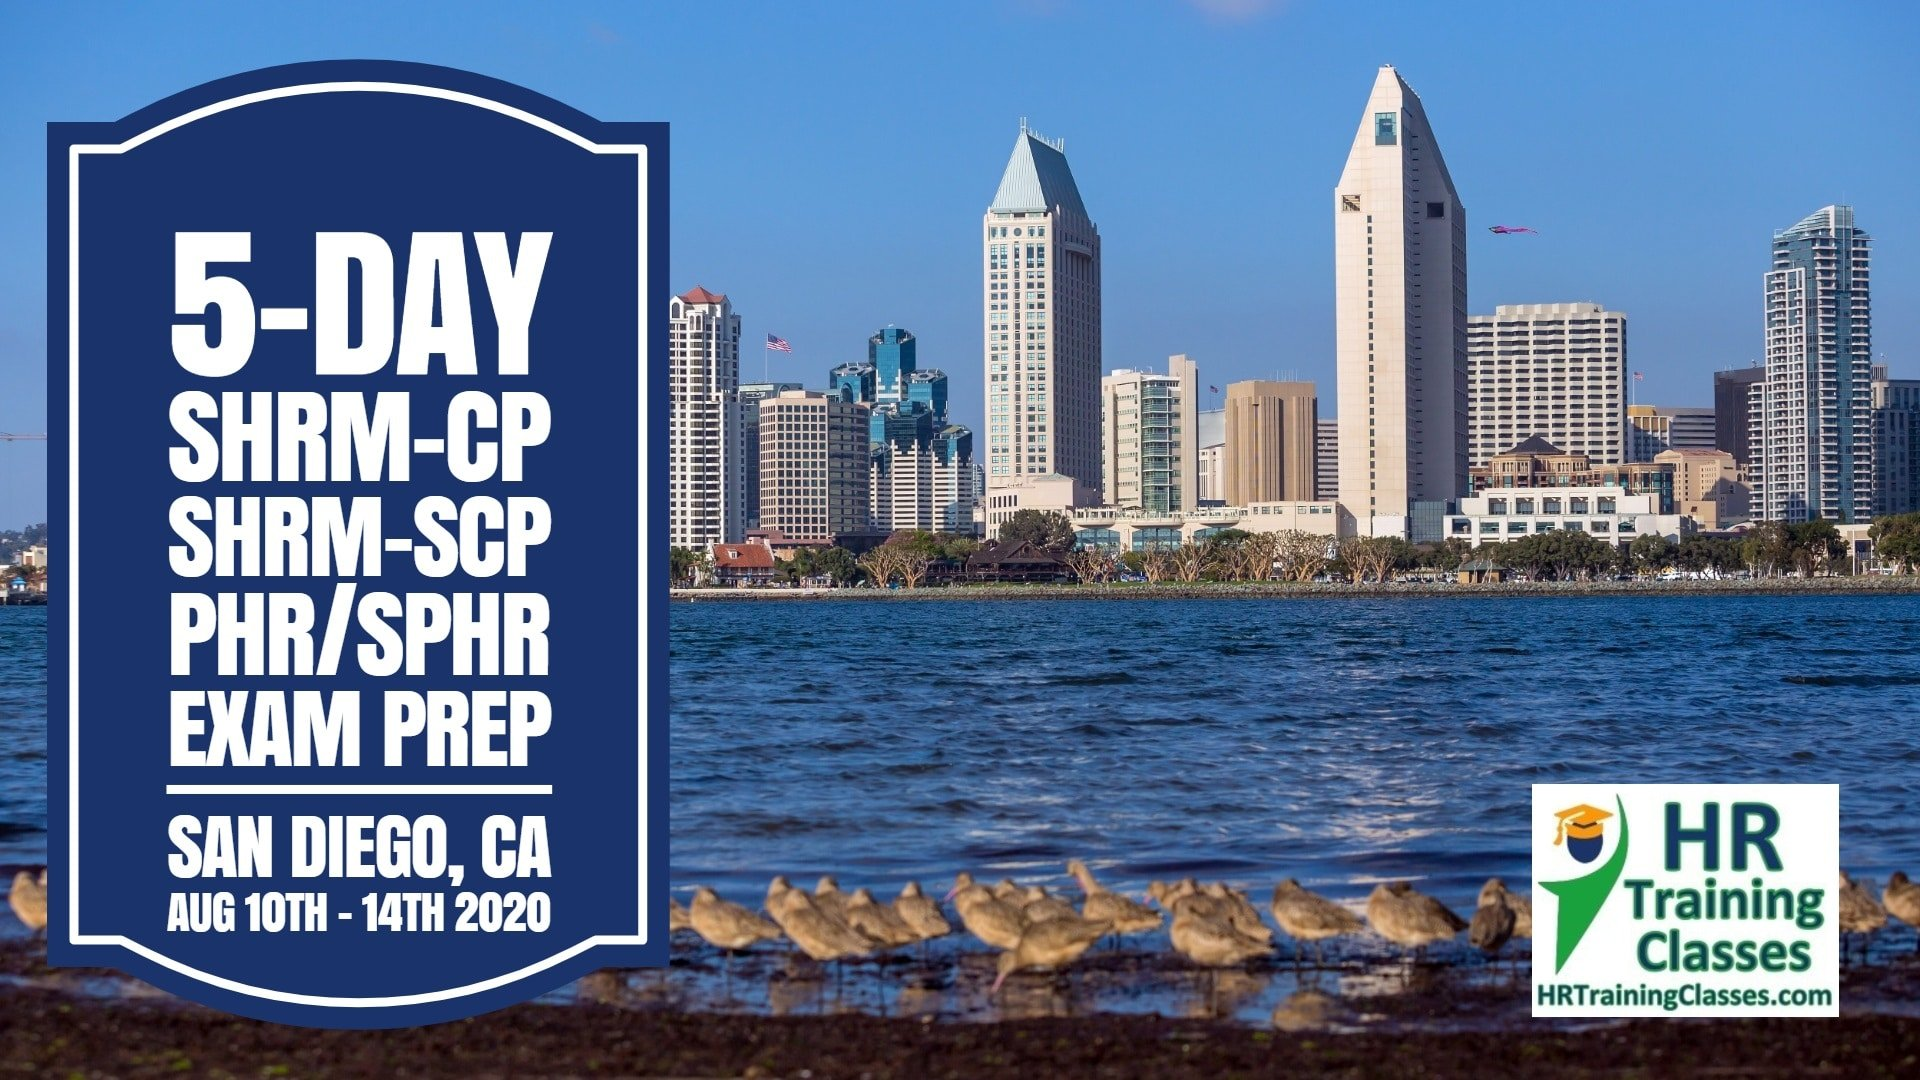 5 Day SHRM-CP, SHRM-SCP, PHR, SPHR Exam Prep Workshop in San Diego, CA starting 8-10-20 and led by Elga lejarza-Penn